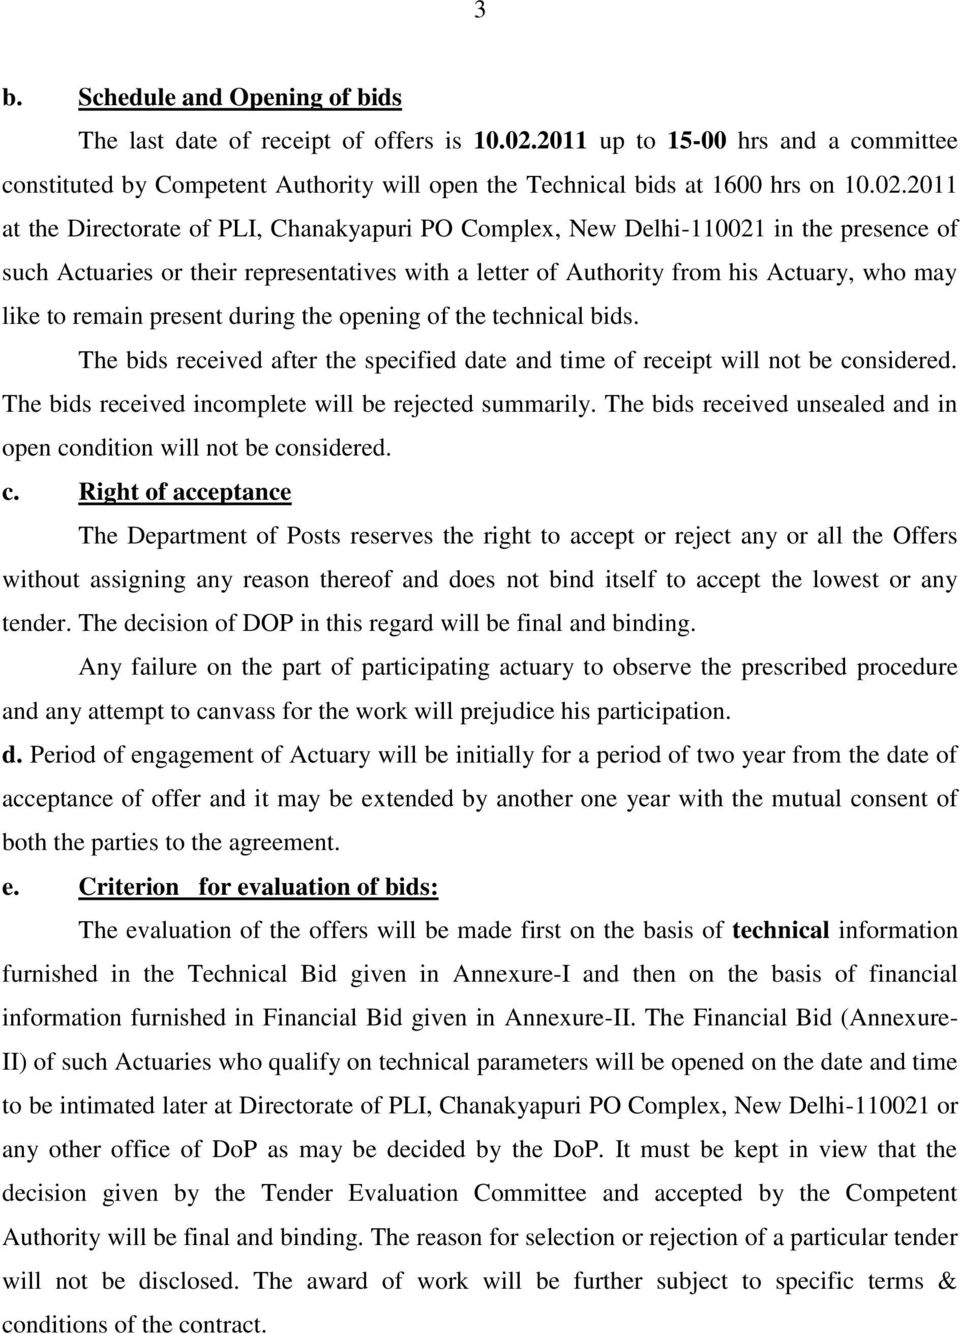 2011 at the Directorate of PLI, Chanakyapuri PO Complex, New Delhi-110021 in the presence of such Actuaries or their representatives with a letter of Authority from his Actuary, who may like to